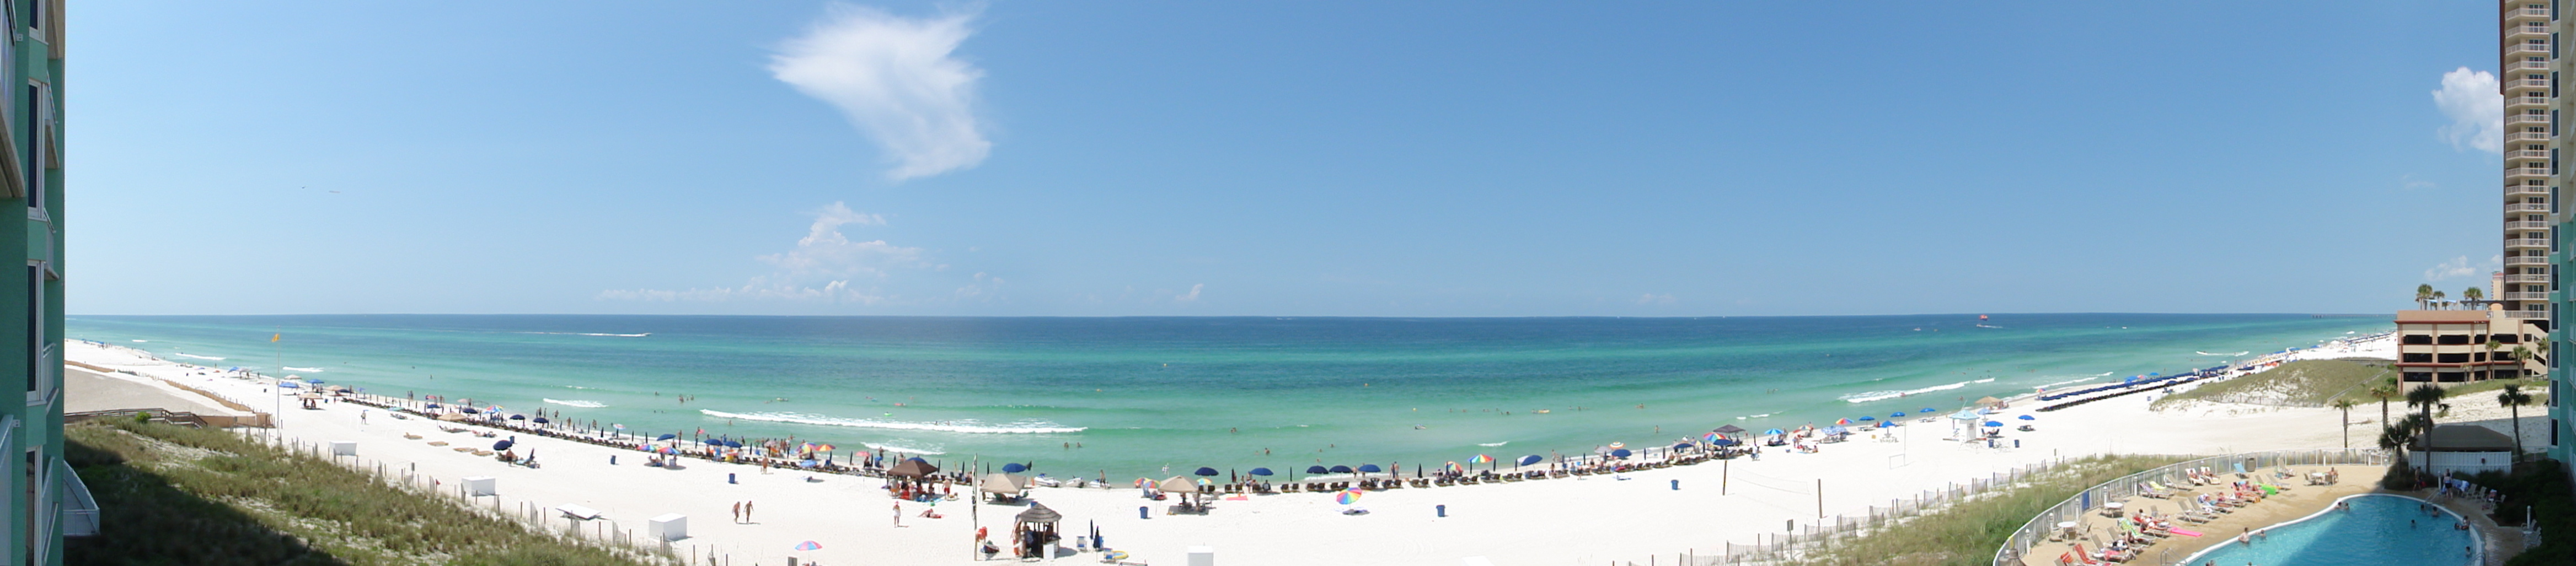 Panama City Beach Weather Forecast This Weekend